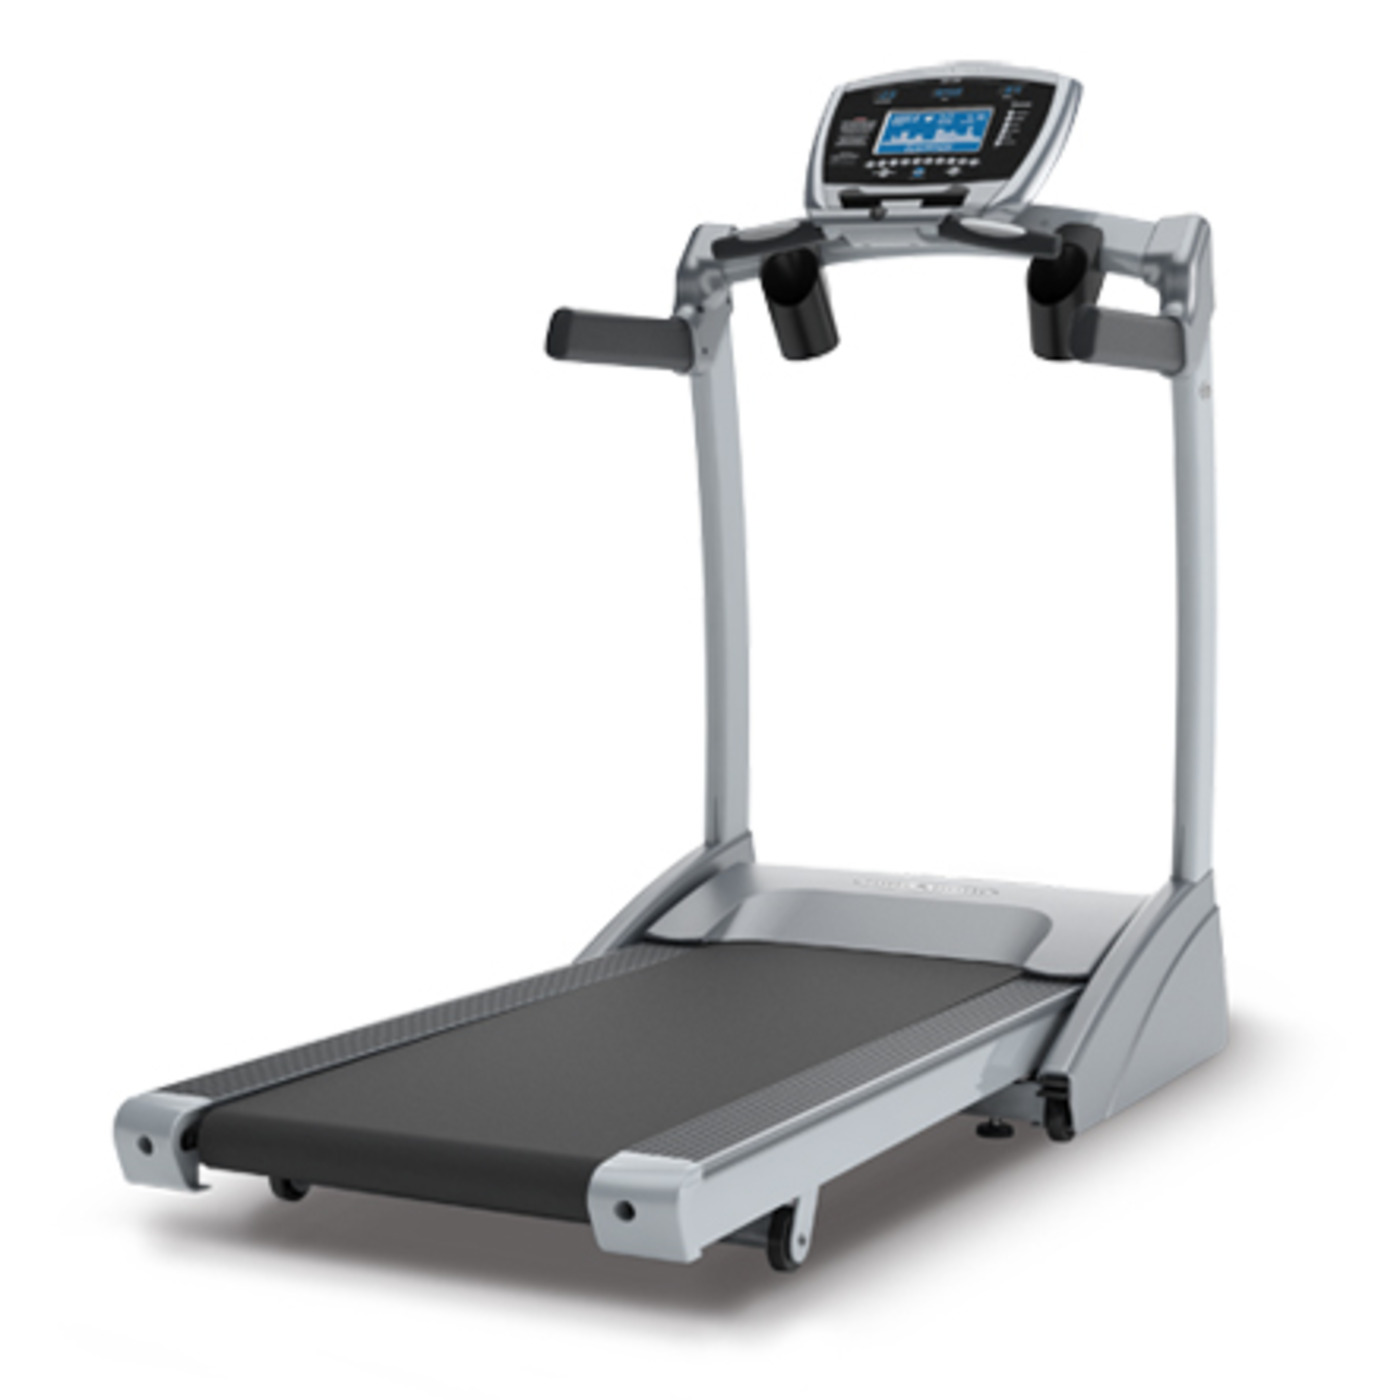 T9250 Treadmill (with New Premier